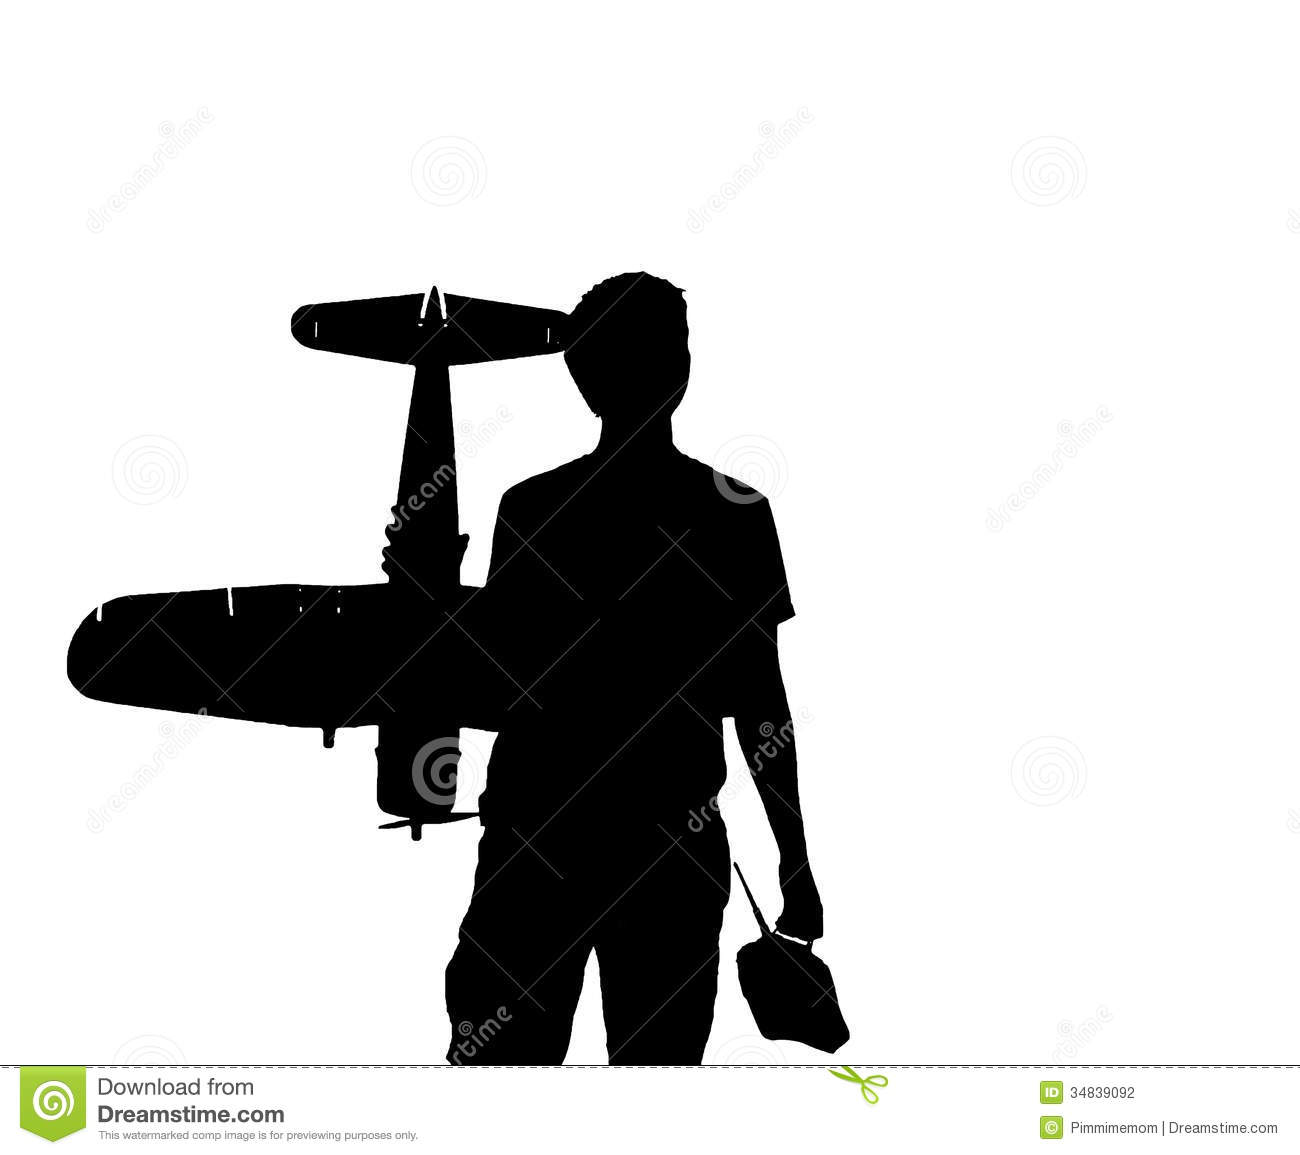 control remote helicopter with Stock Photography Young Man Rc Airplane Controller Black Silhouette White Background Copy Space Image34839092 on I Need A Circuit For Rc Car Transmitter And Reciever together with Brake Hydraulic System additionally B009NNM5DU together with Stock Photography Young Man Rc Airplane Controller Black Silhouette White Background Copy Space Image34839092 likewise Vex Robotics Motorized Robotic Arm.